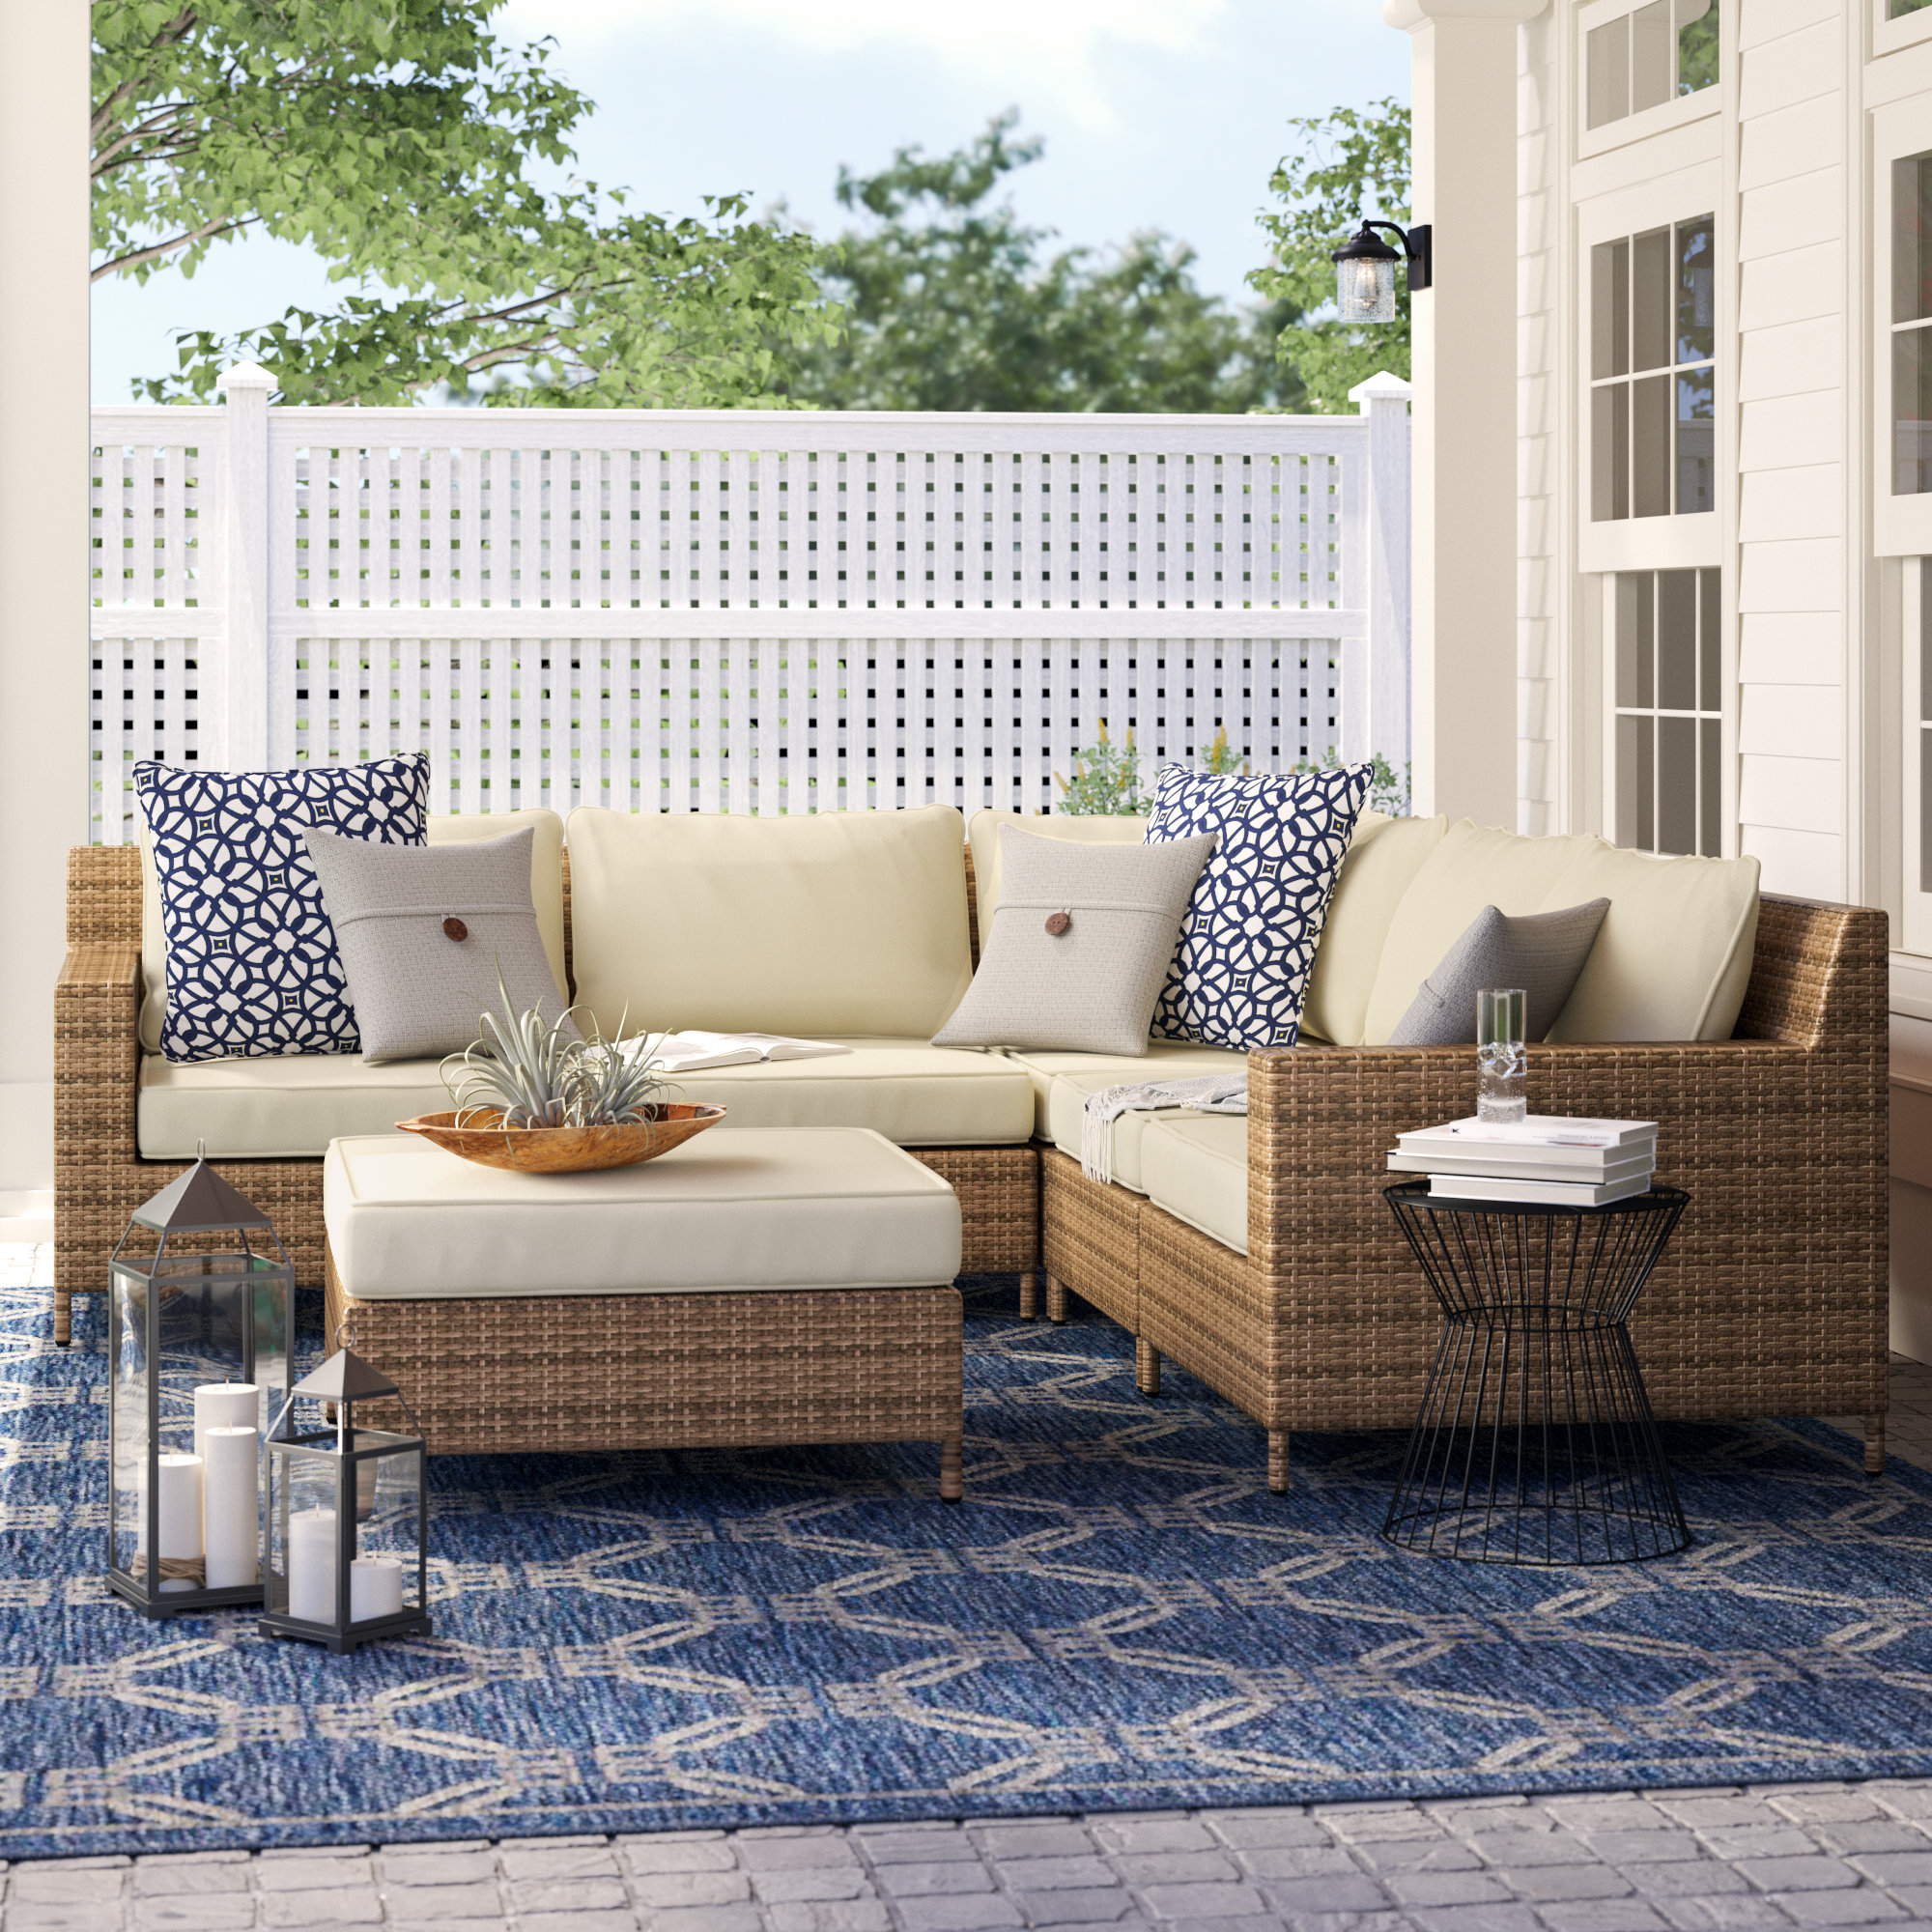 Hillcrest Patio Sectional With Cushions Pertaining To Popular Larsen Patio Sectionals With Cushions (Gallery 7 of 20)